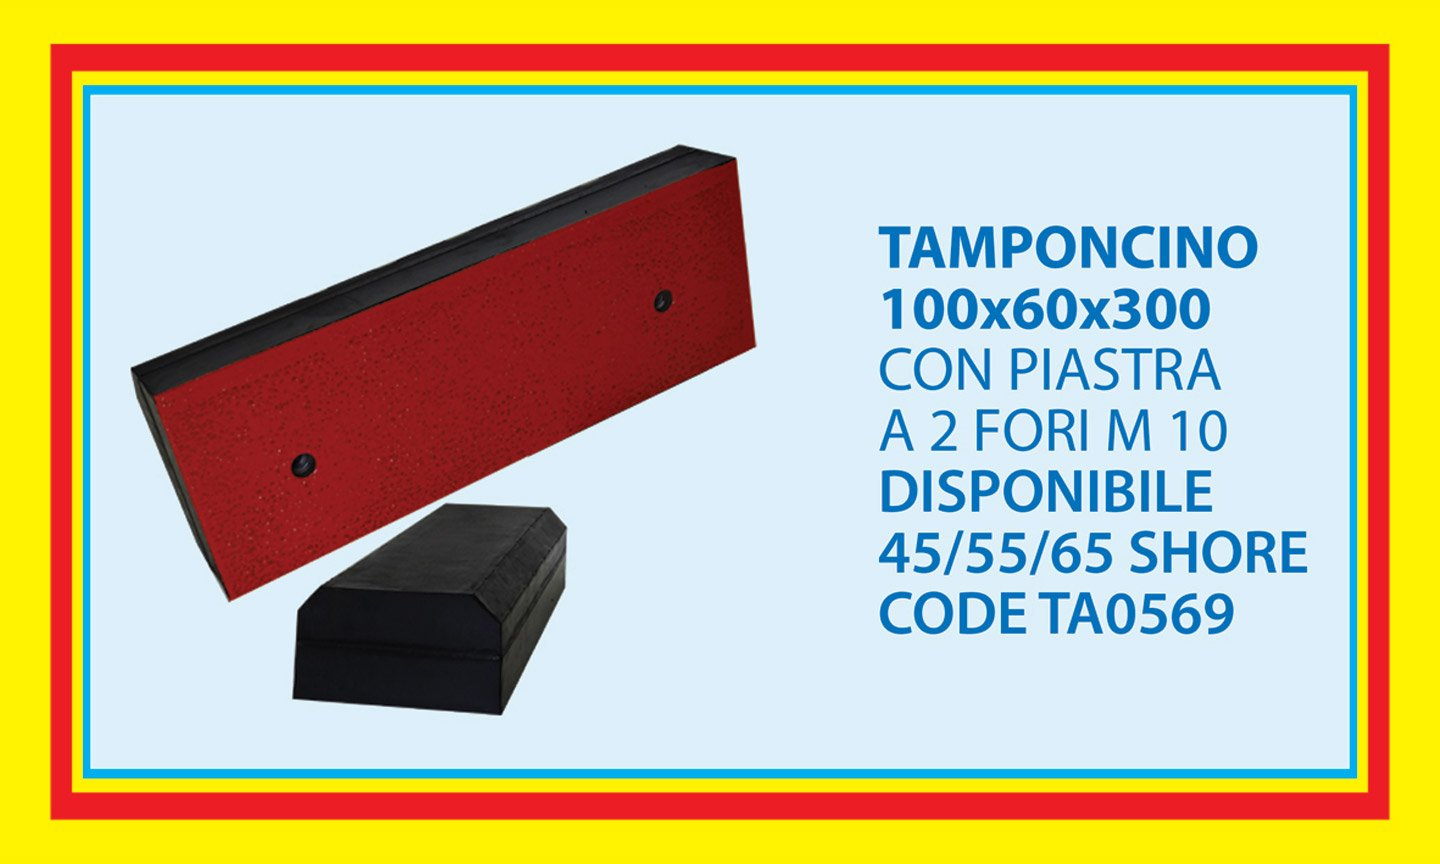 tamponcino 100X60X300